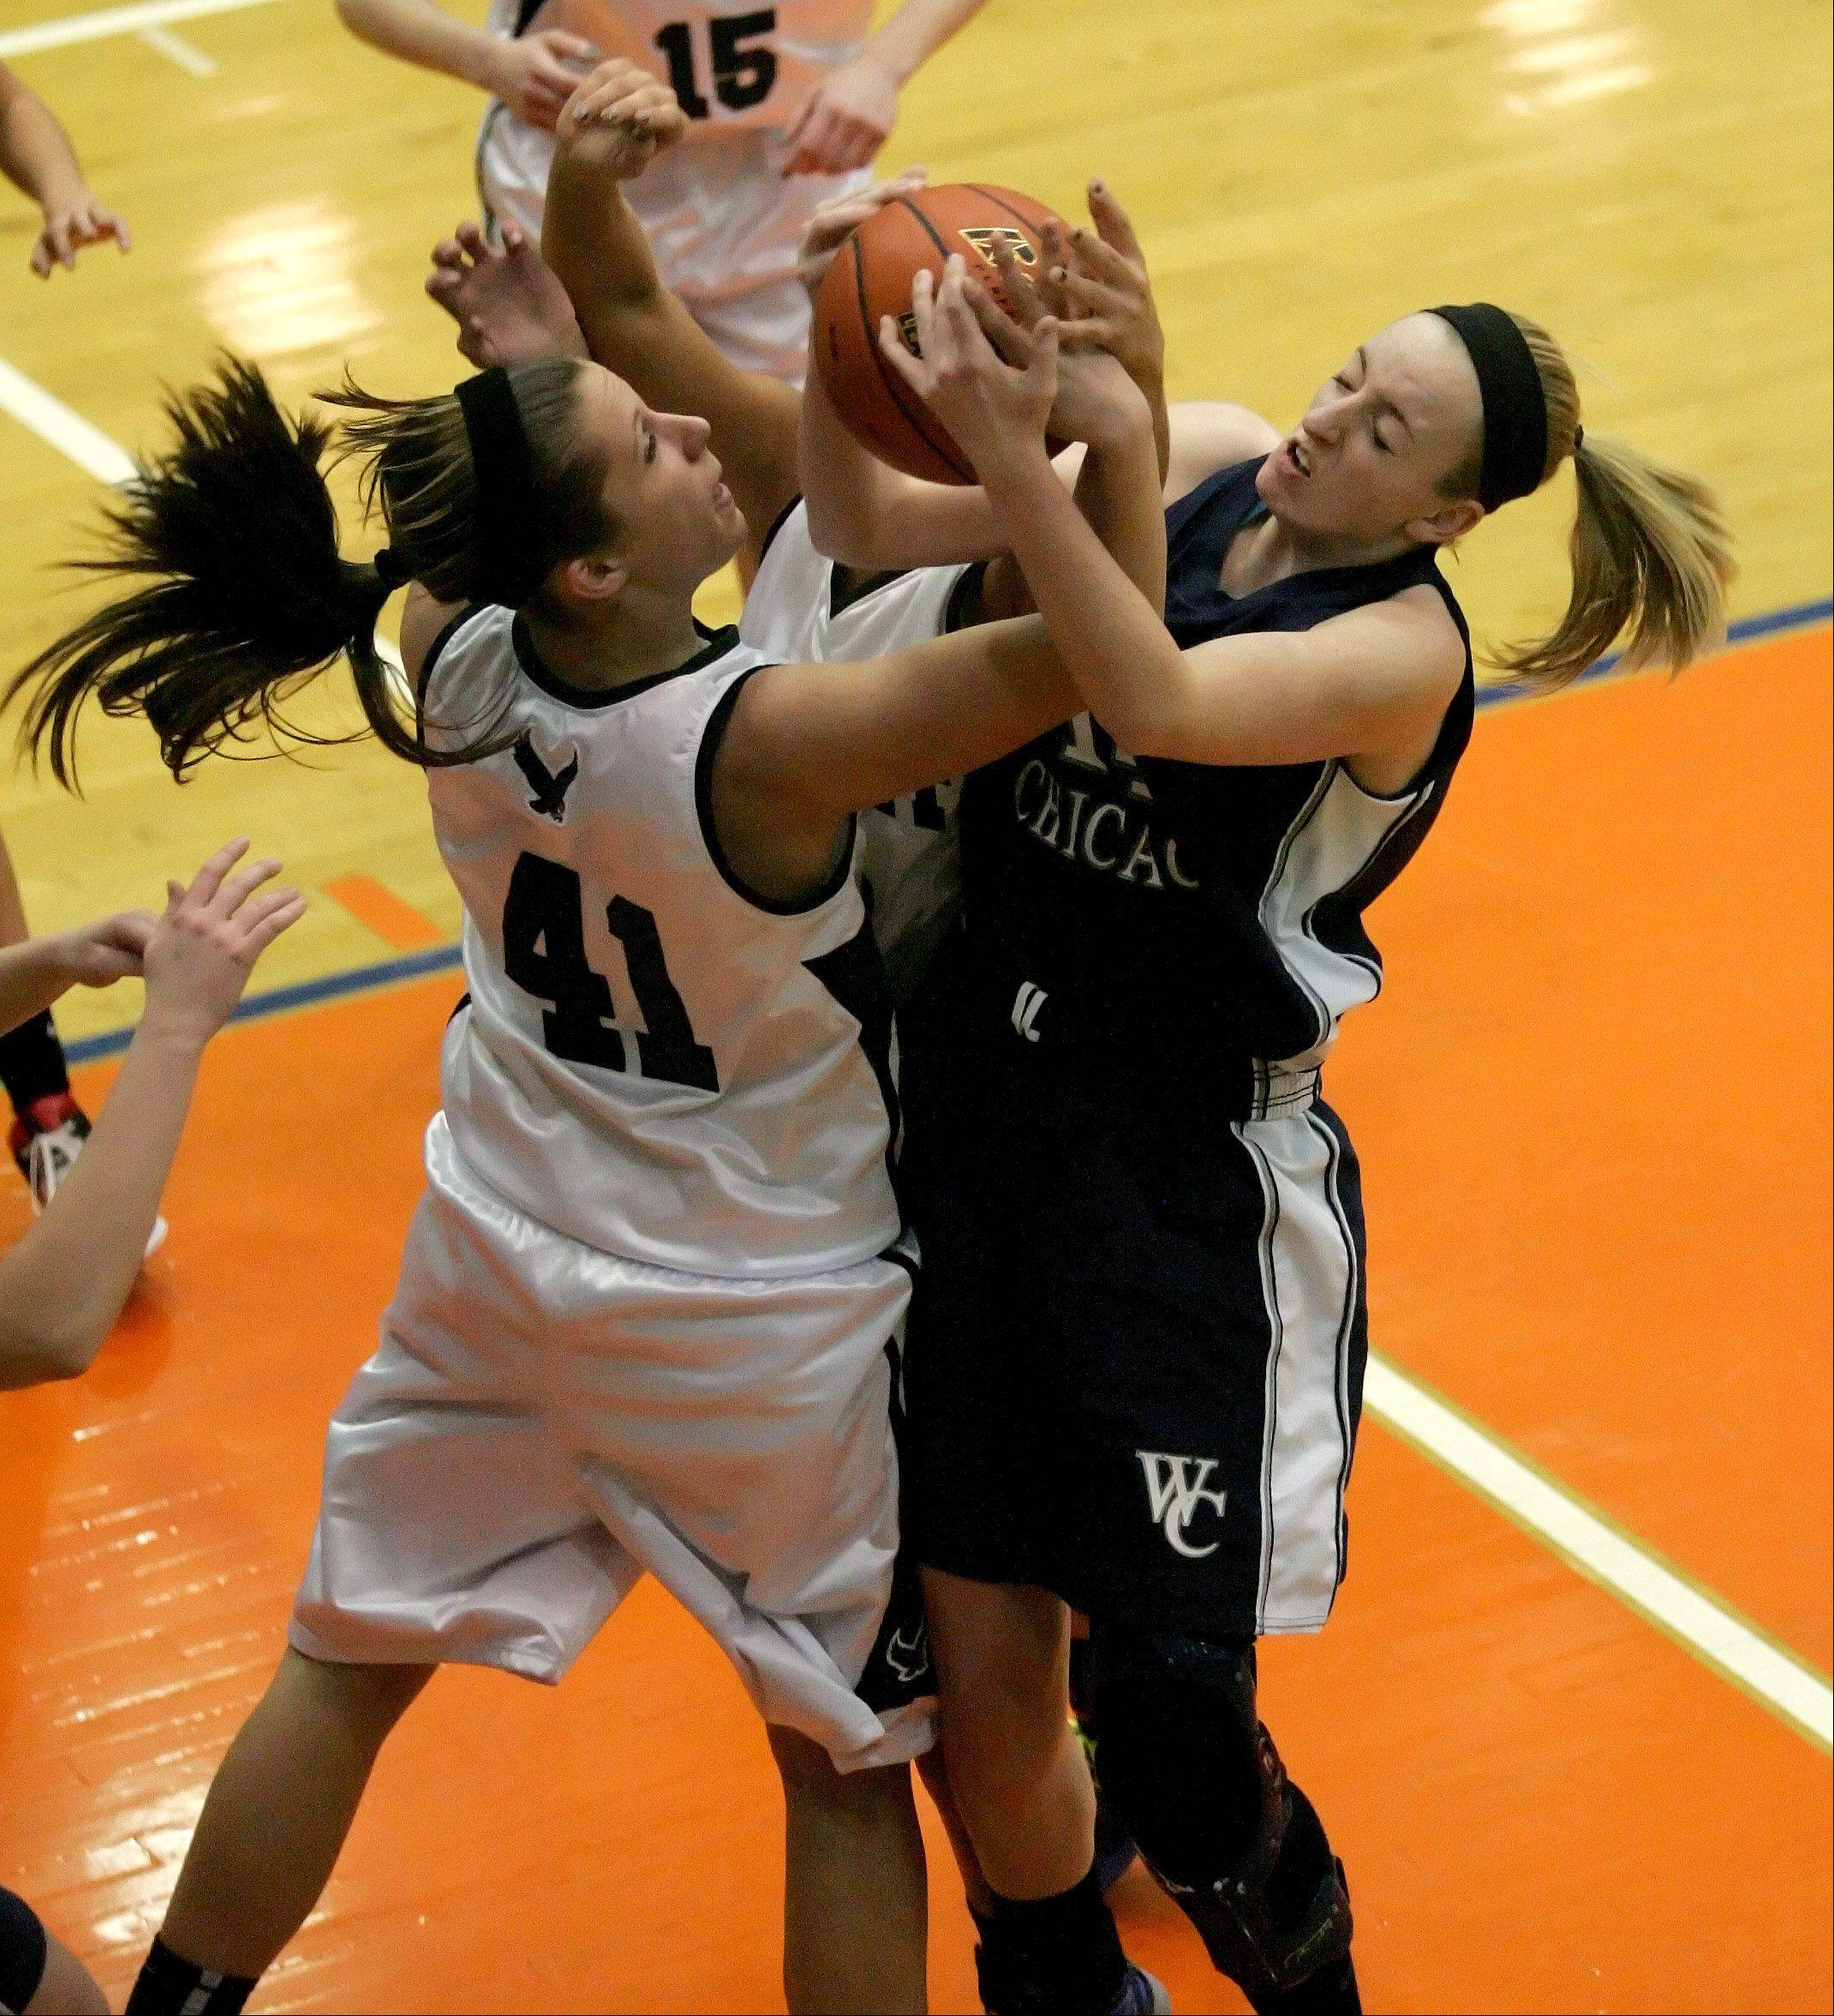 Lisa Palmer of Bartlett, left, and Brenna MacDonald of West Chicago, right, go after a rebound.